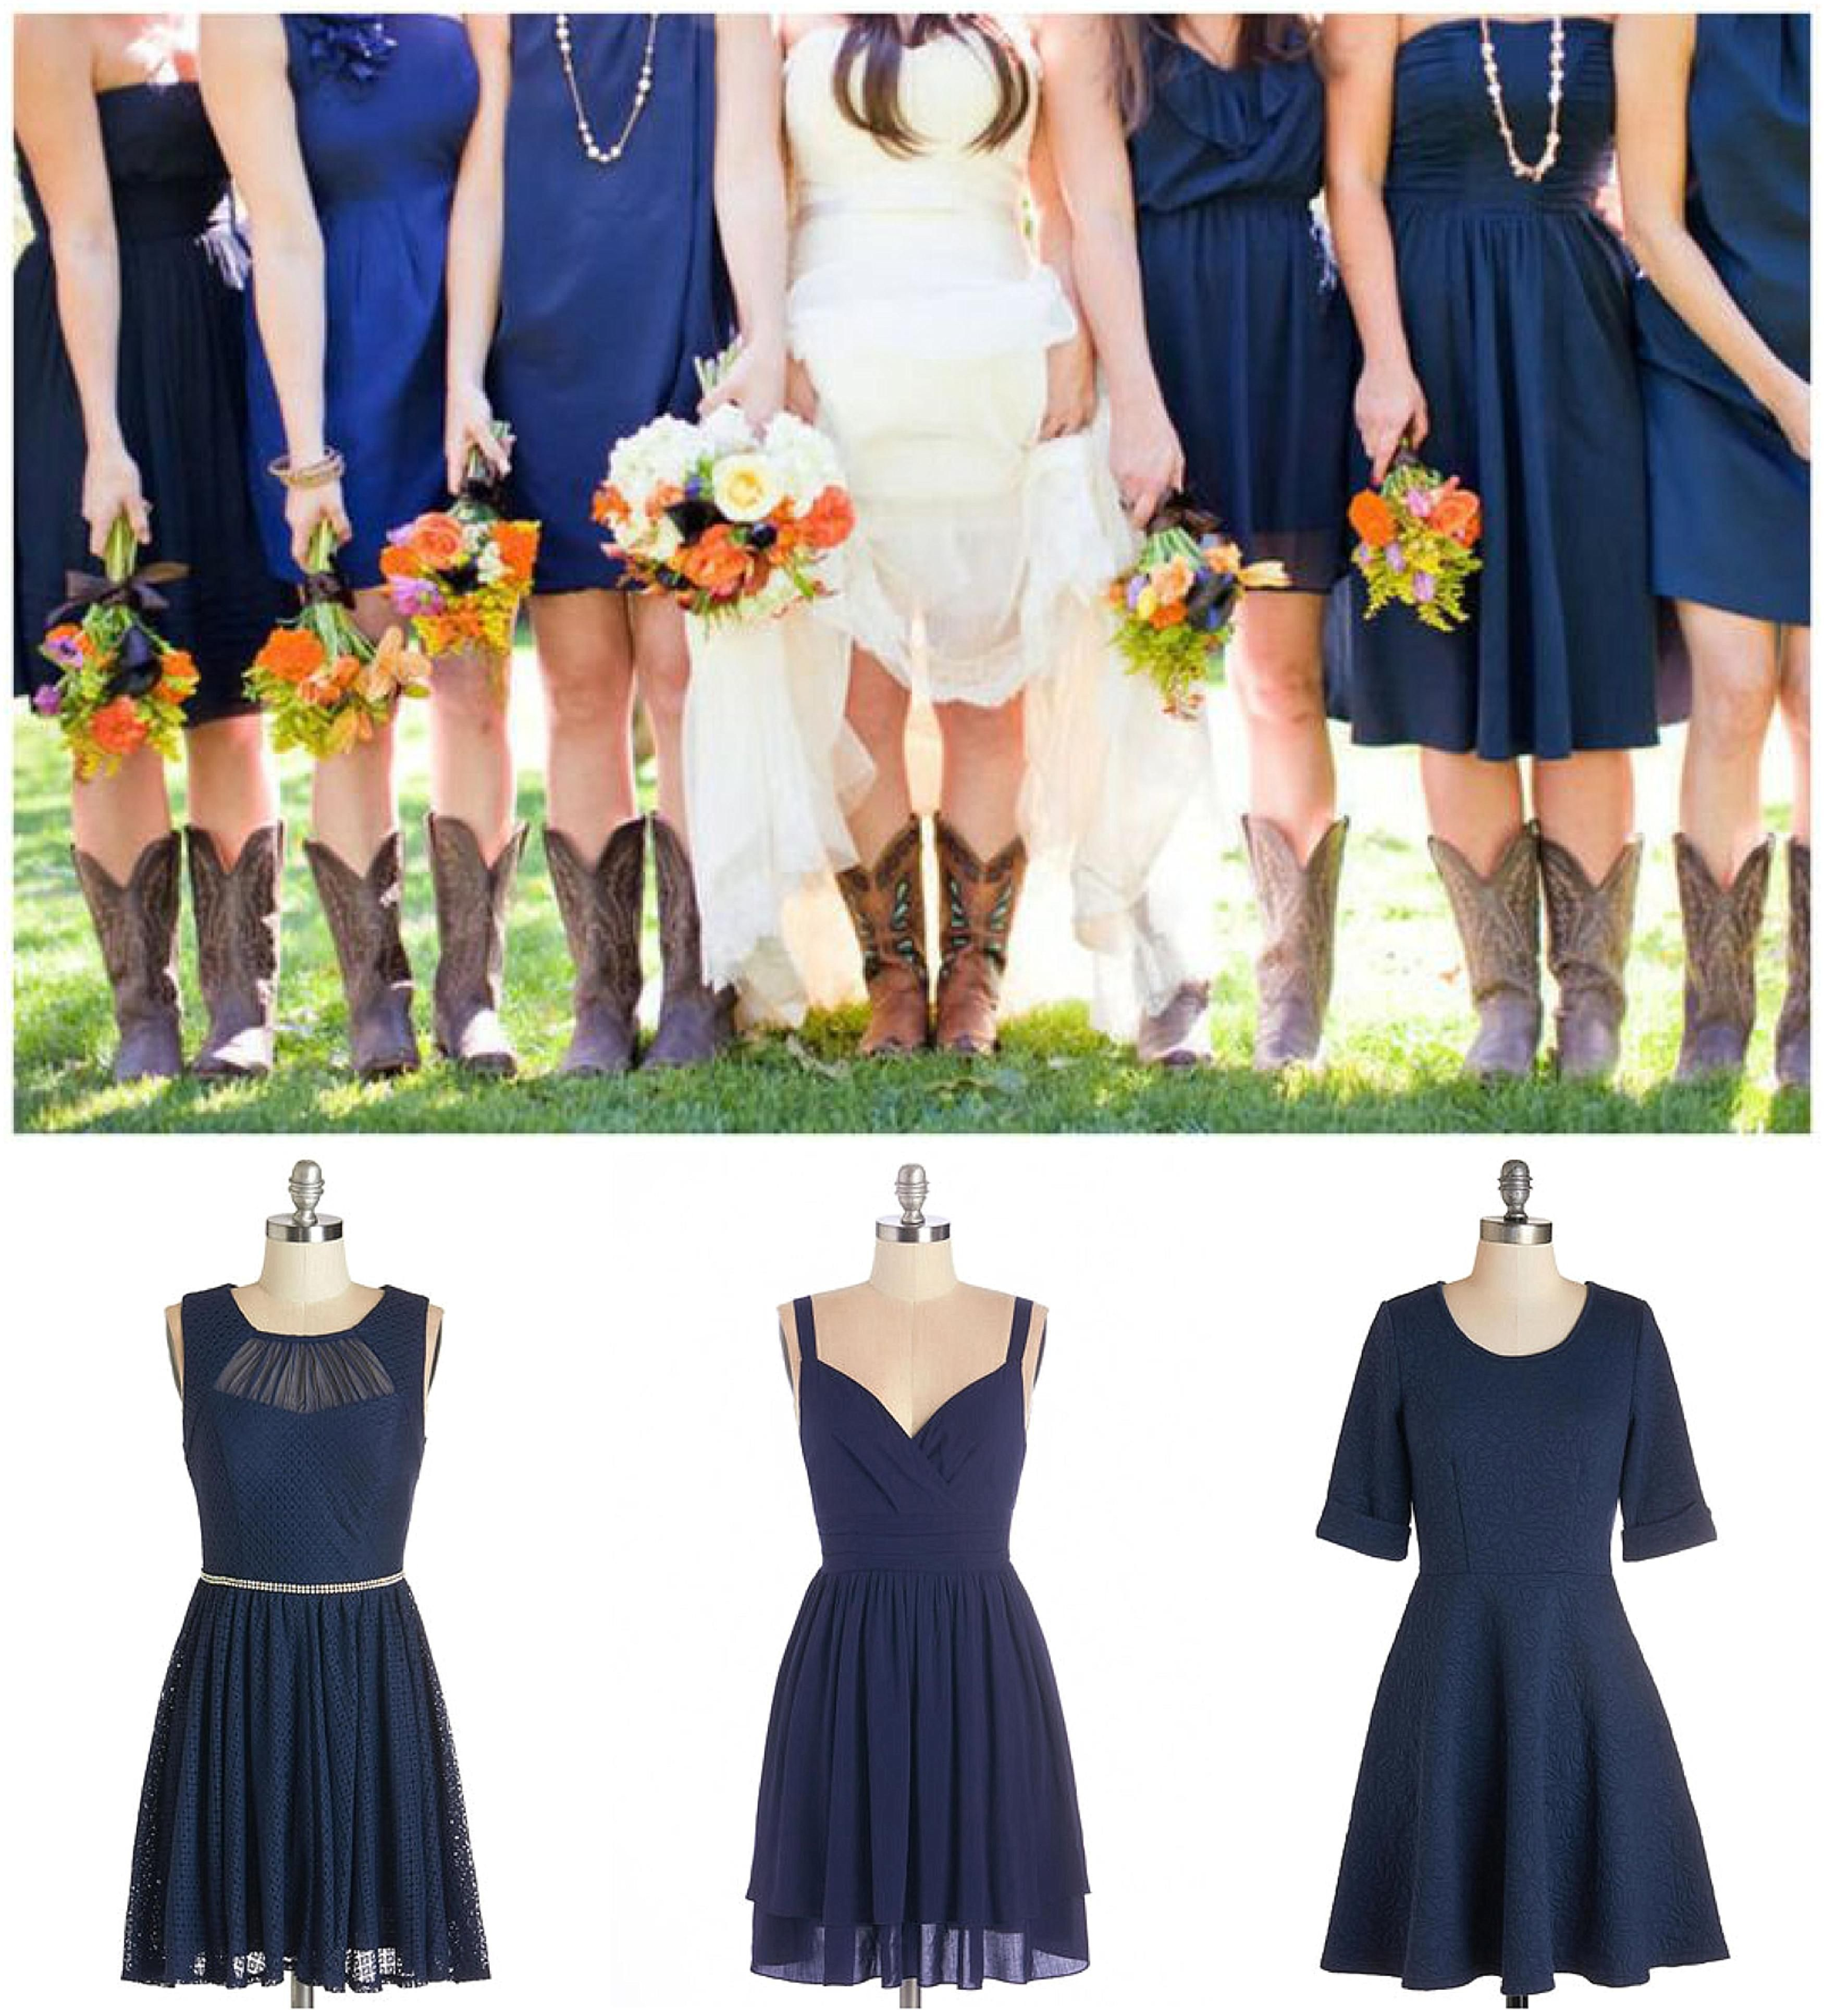 Mismatched bridesmaid dress ideas for fall weddings mismatched mismatched bridesmaid dress ideas for fall weddings ombrellifo Choice Image